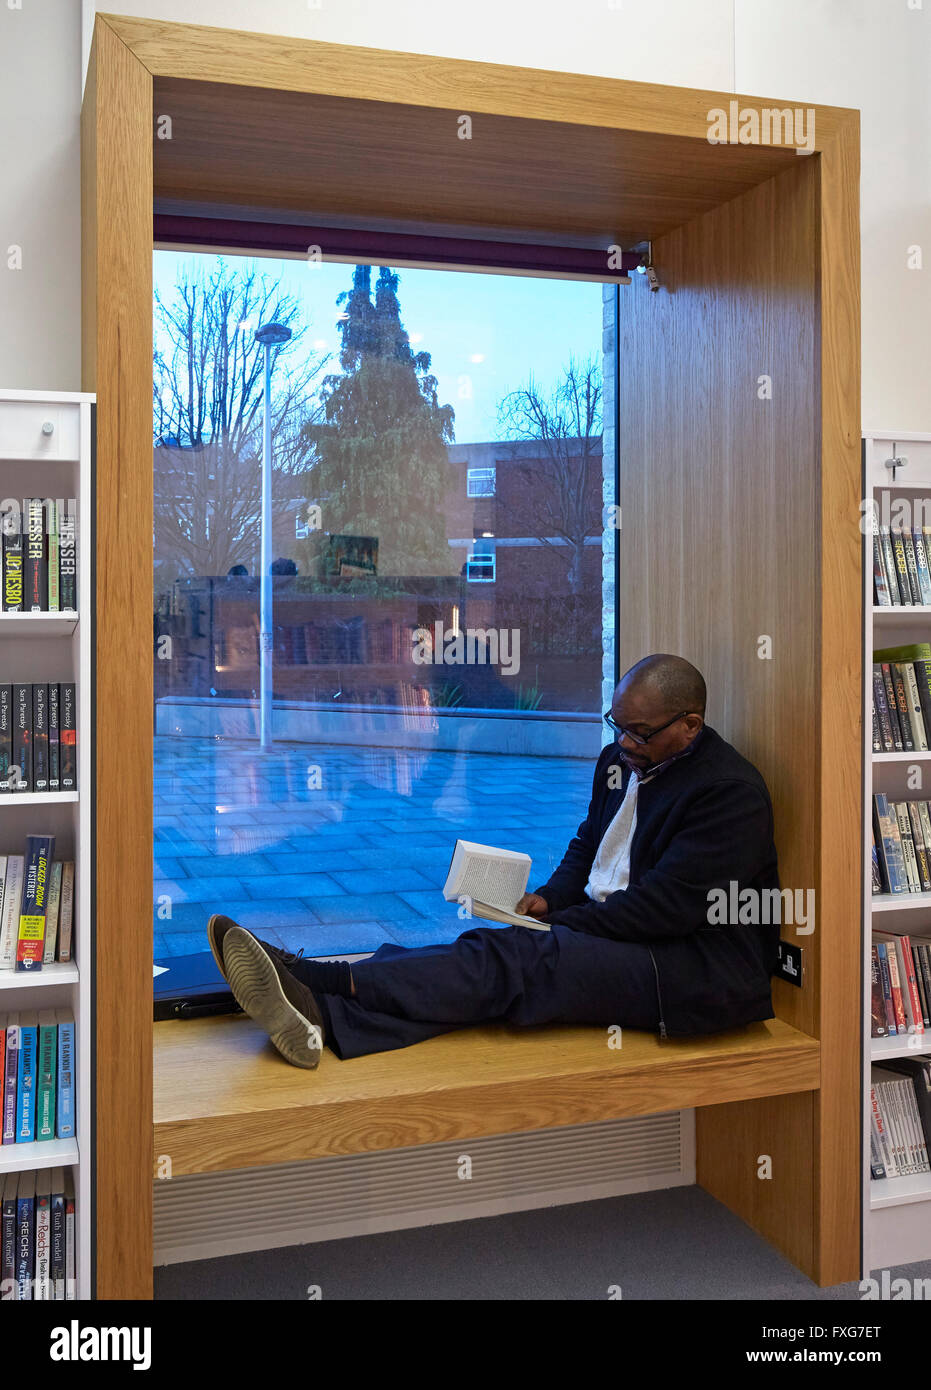 Interior view showing recessed window seat with man reading. Camberwell Library, London, United Kingdom. Architect: - Stock Image